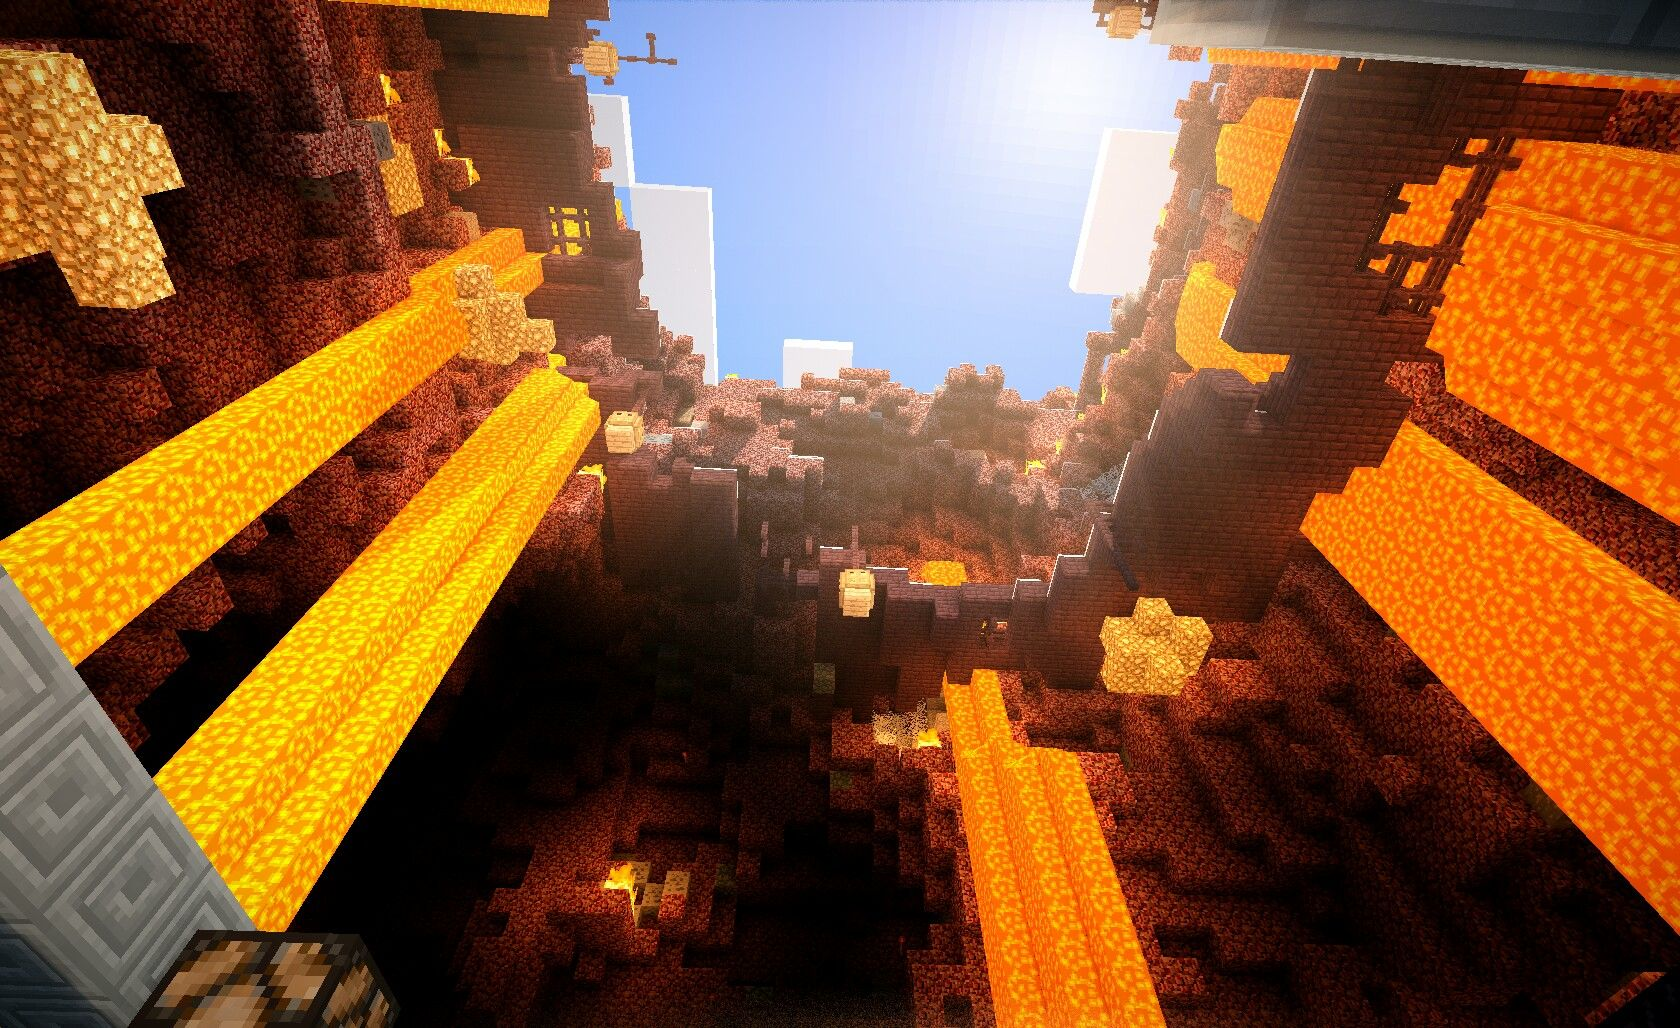 Pin By  Ud835 Udd5b Ud835 Udd60 Ud835 Udd6a Ud835 Udd5b Ud835 Udd60 Ud835 Udd6a  Ud80c Udd89 On Minecraft  Memes  Creations  And Facts